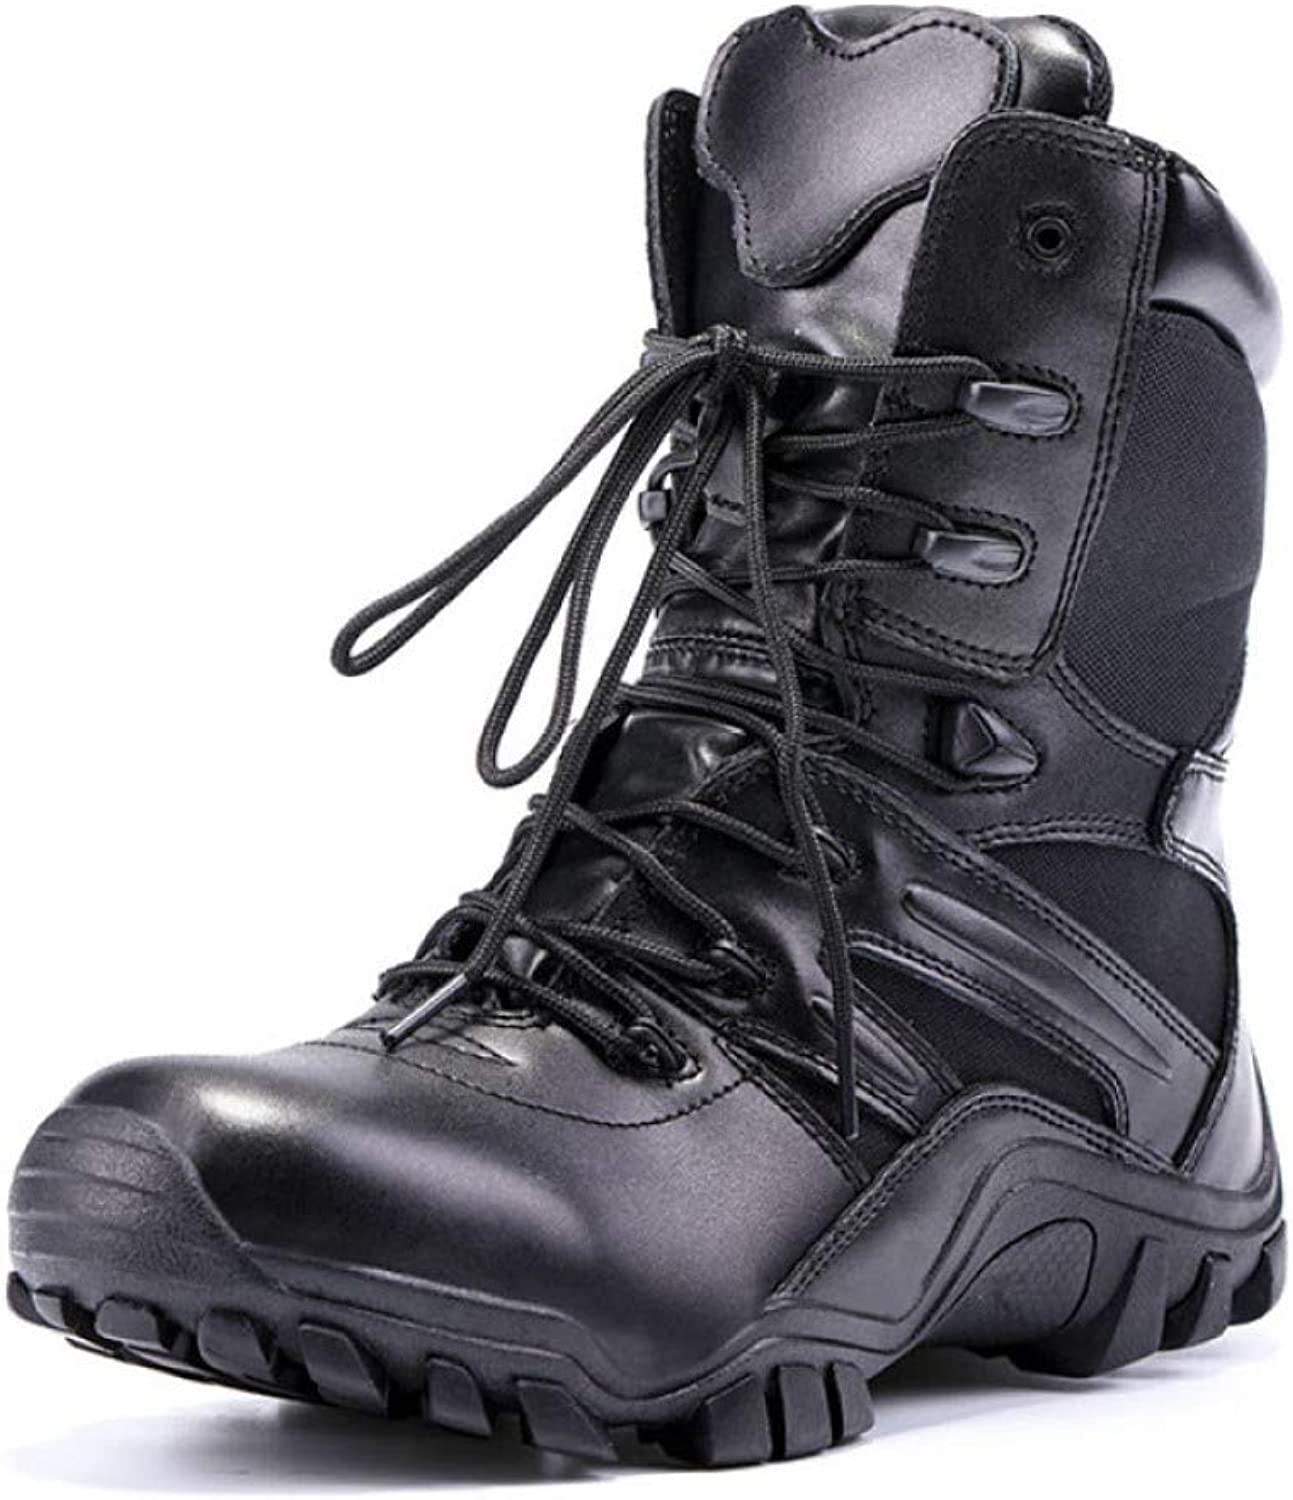 DSFGHE Boots Men's Martin Military Tactical Boots Chelsea Waterproof Hiking Combat Boots Army Work Boots